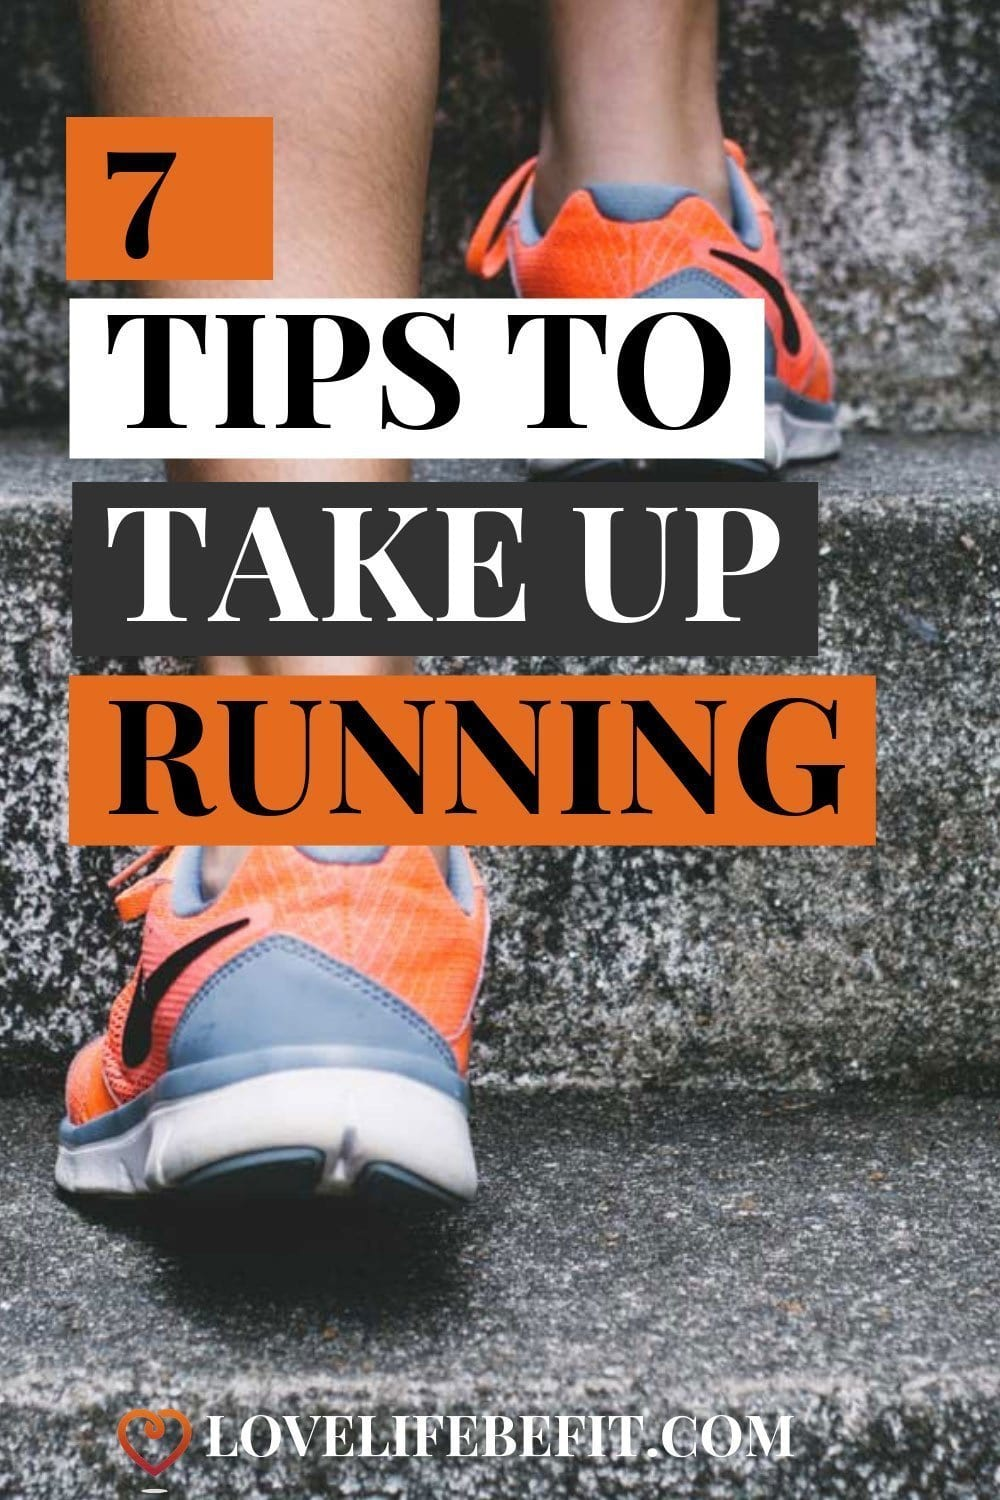 Running is a tried and tested way of getting into shape. But if you\'re a newbie it\'s best to take it slow. Follow these tips to discover your passion for all things running...#running